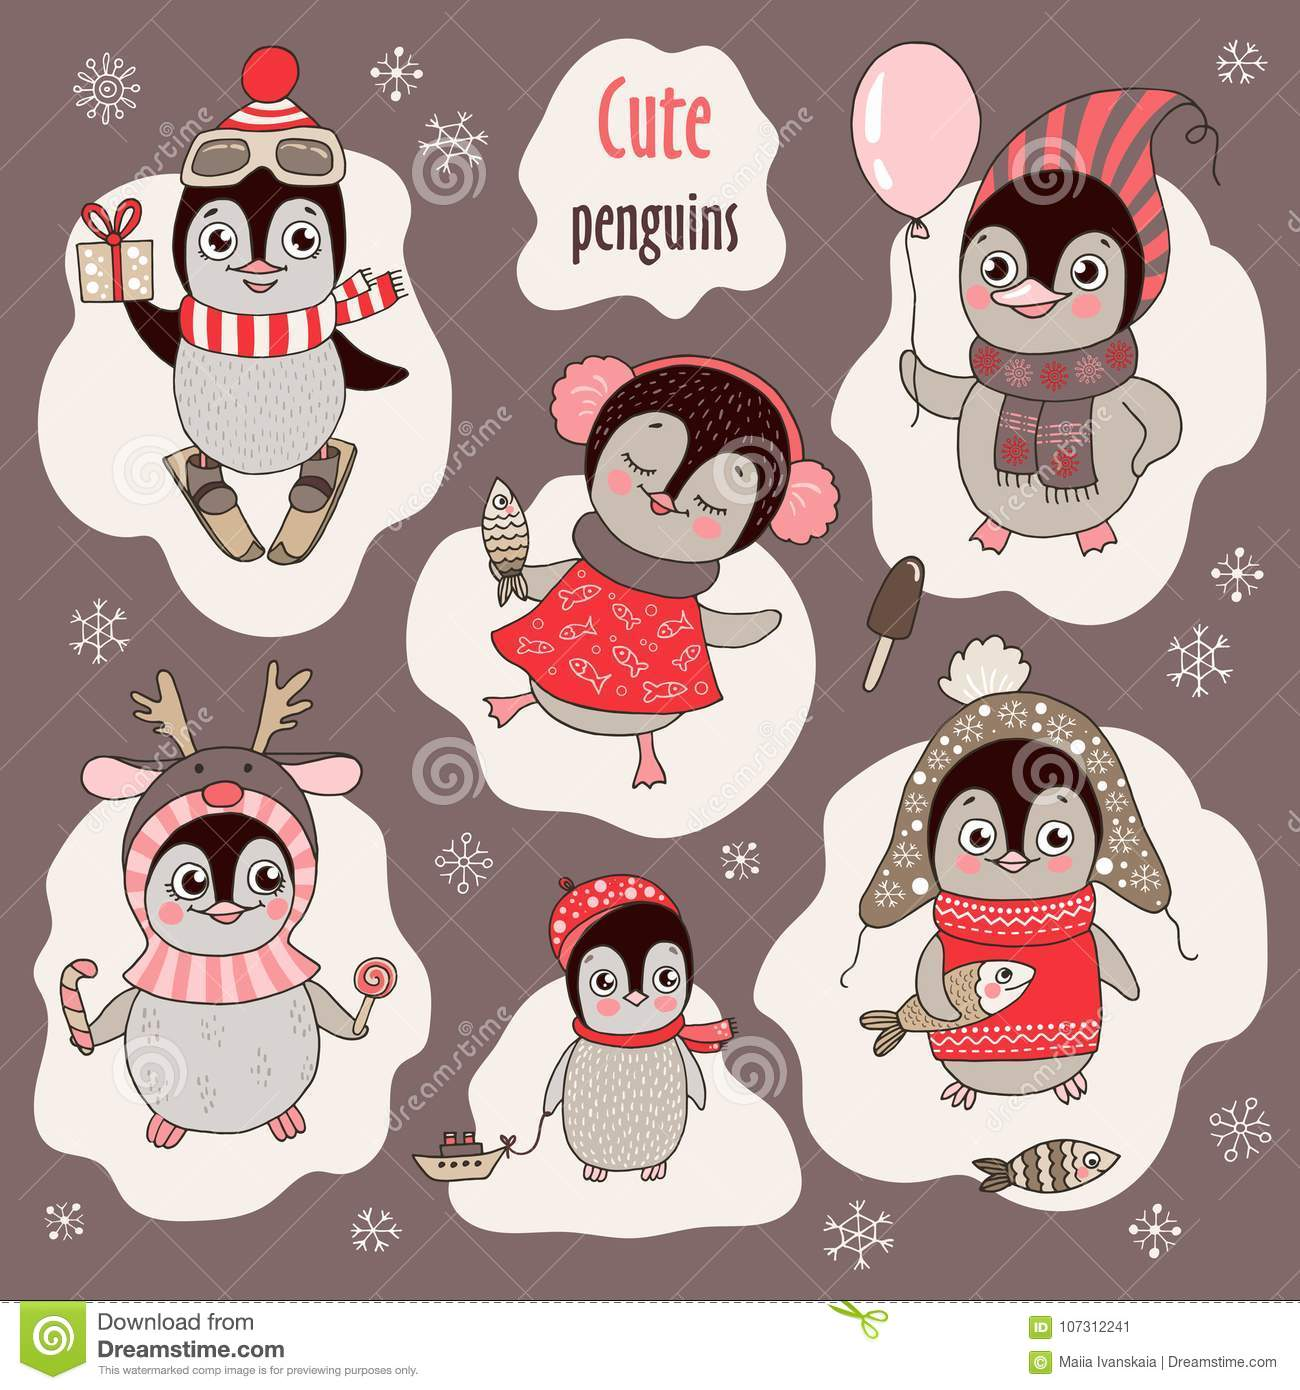 Christmas set with six cute penguins and snowflakes